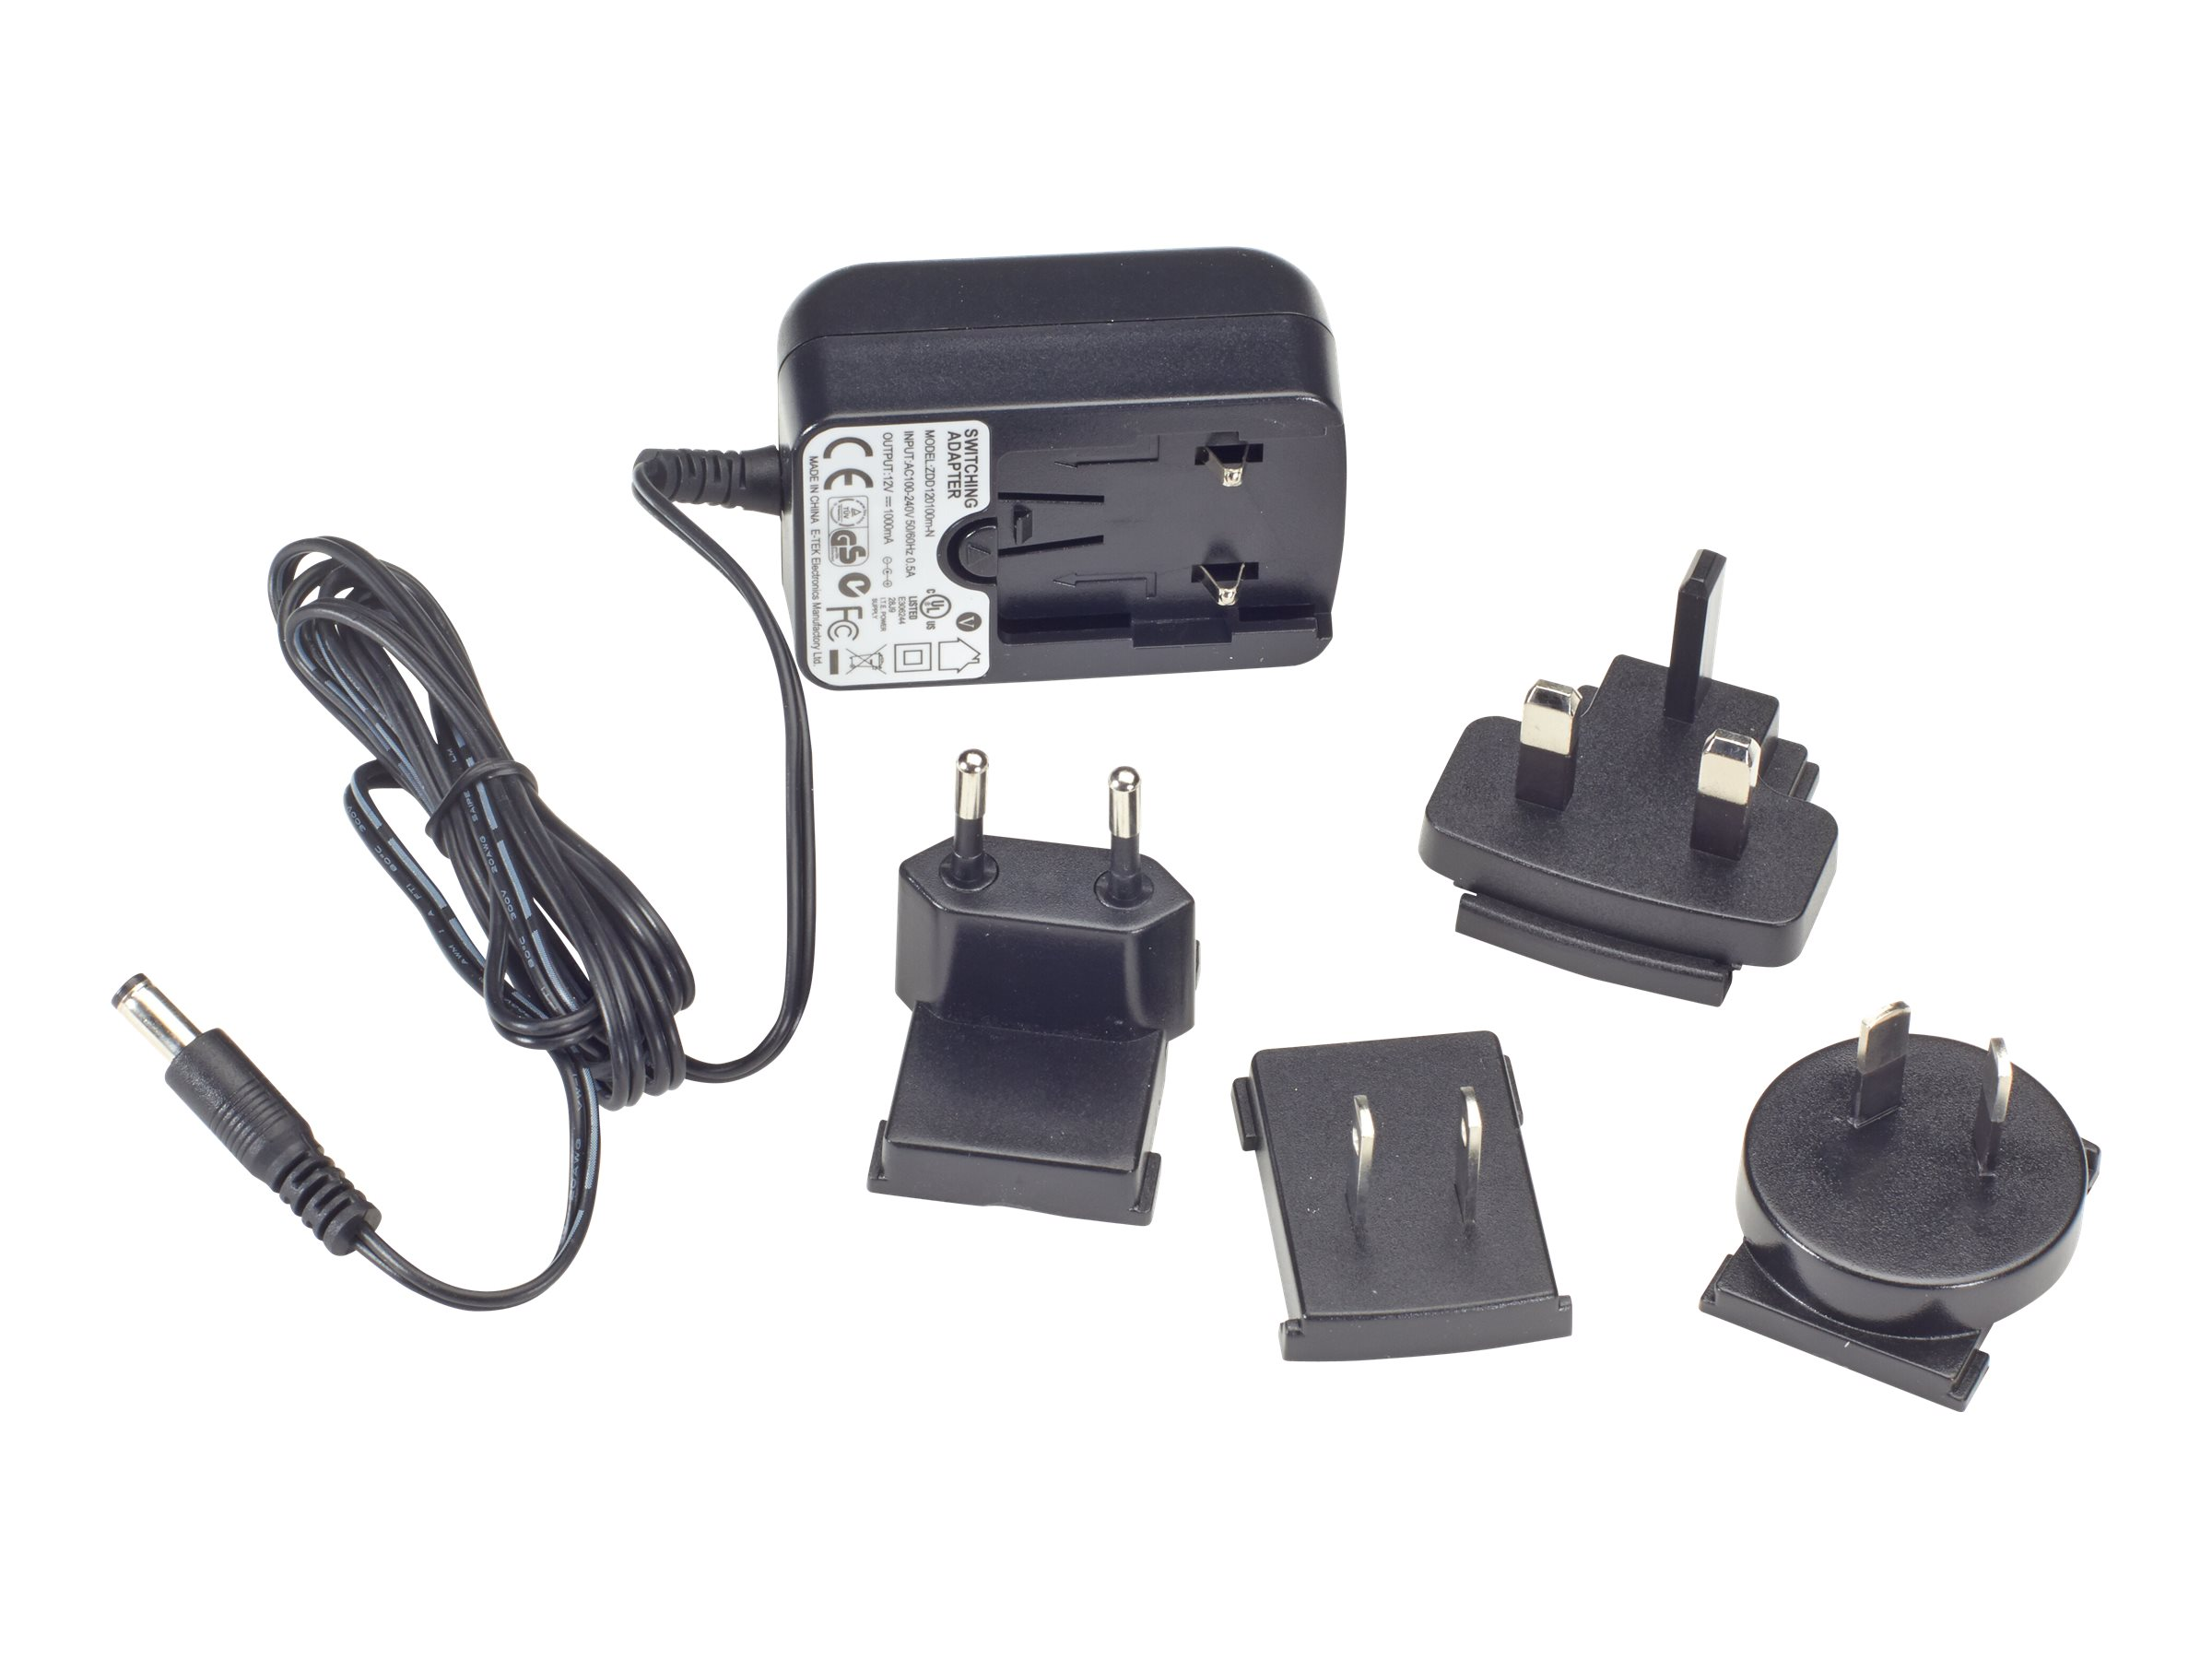 Black Box Spare Power Supply for the ServSwitch DVI/HDMI + USB Extender Kit - Power adapter